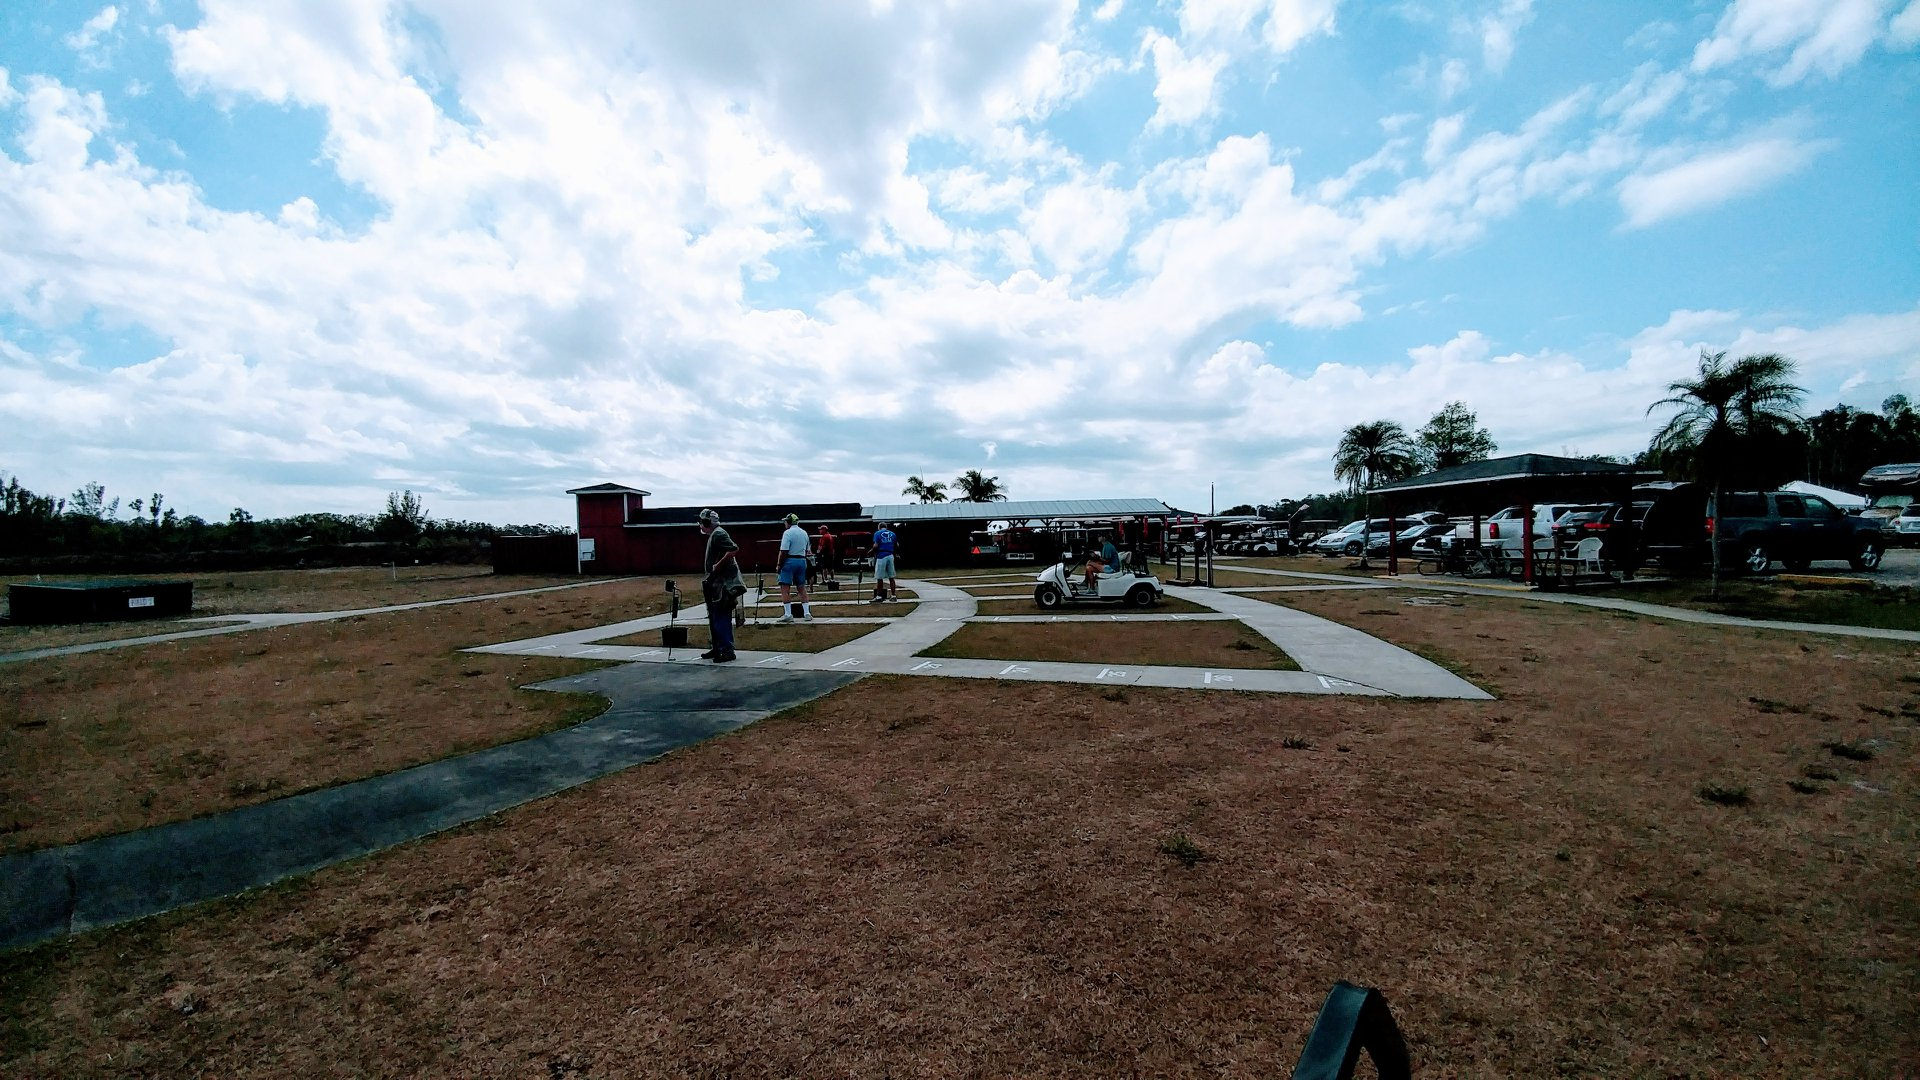 ATA trap shoot at Gulf Coast Clays gun range